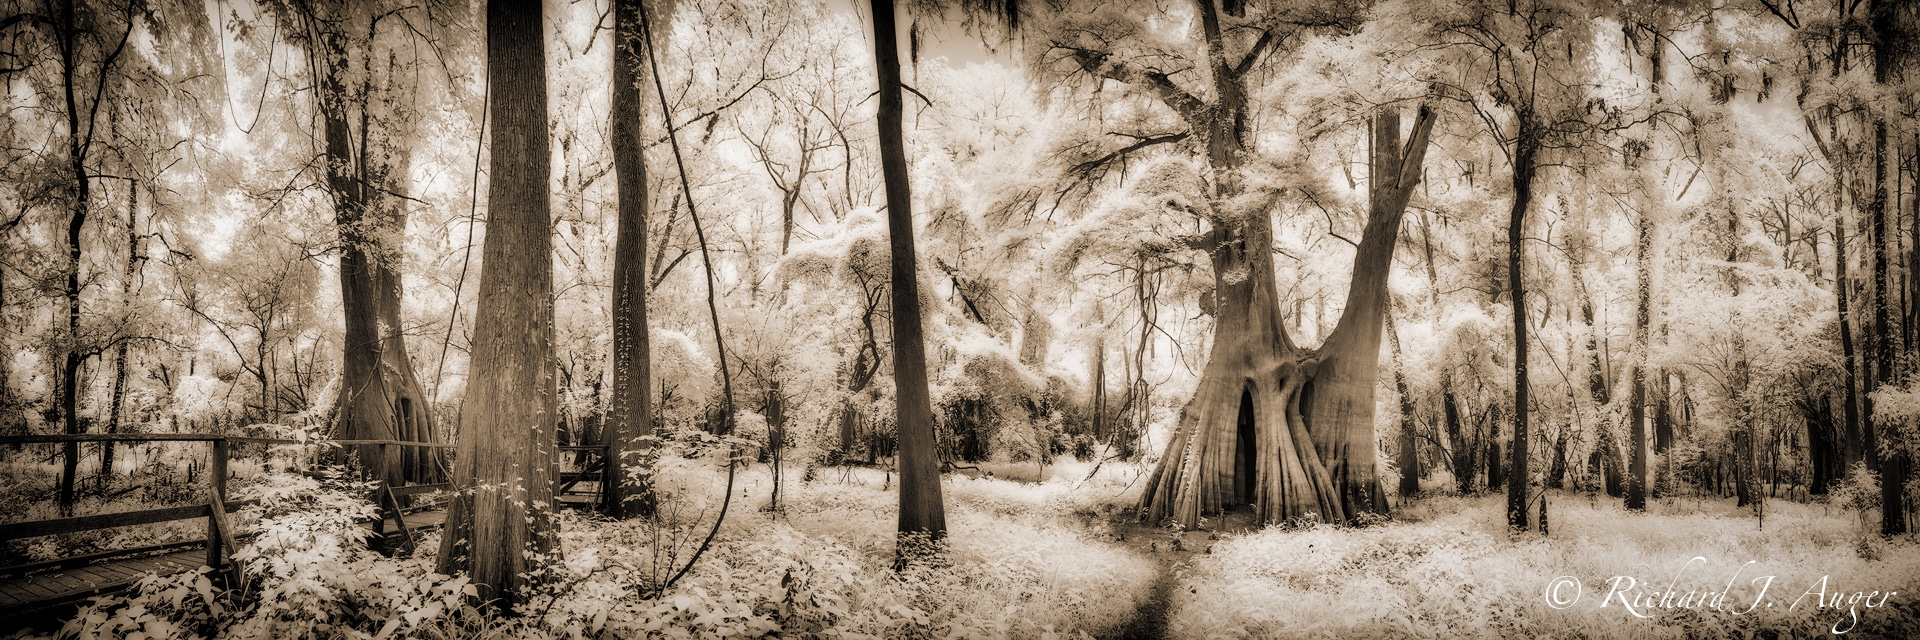 Cat Island Swamp, Louisiana, Forest, Cypress Trees, Oak Trees, magical, mystical, sepia, photograph, photographer, infrared